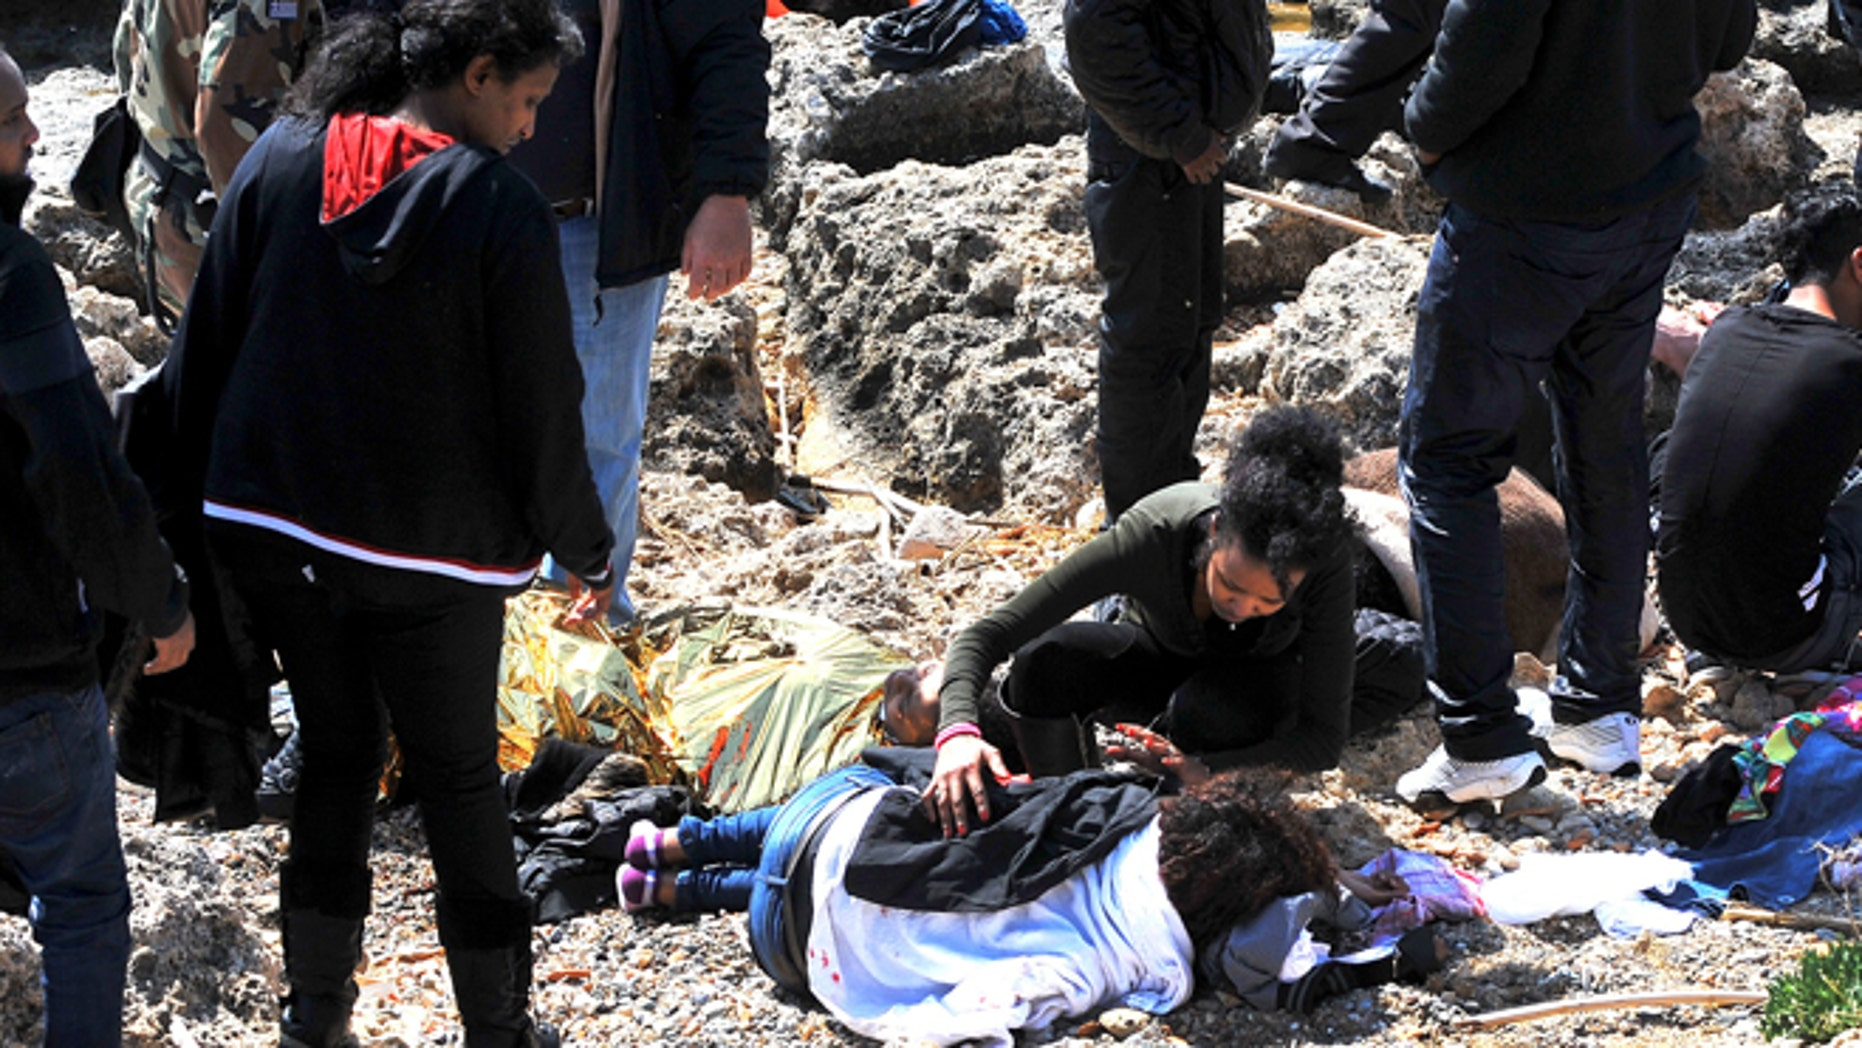 April 20, 2015 : An immigrant treats a co-traveler lying on a coast in the eastern Aegean island of Rhodes, Greece. Greek authorities said that at least three people have died, including a child, after a wooden boat carrying at least 83 migrants from the Turkish shore ran around off the island of Rhodes.